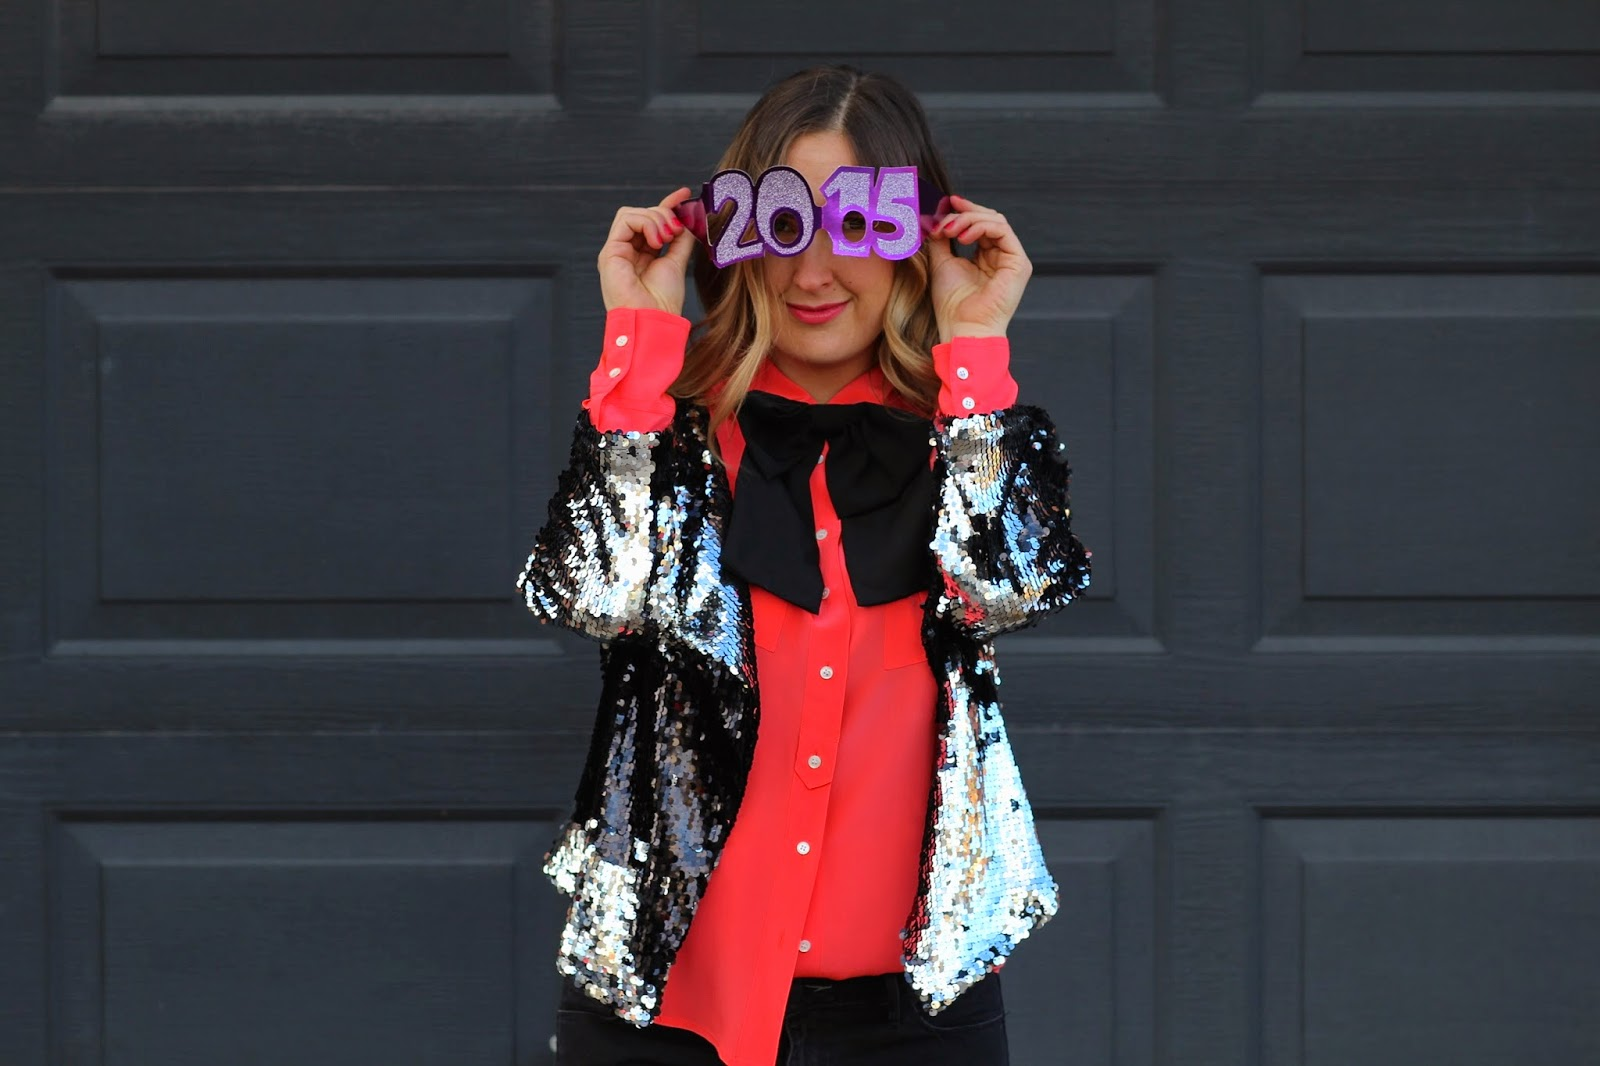 sequin jacket, new year's eve sequin, what to wear on NYE, what to wear on new years eve, sequins, sequin outfit, big bow tie, neon pink shirt, j.crew neon pink top, what would jen wear, nye fashion, nye style